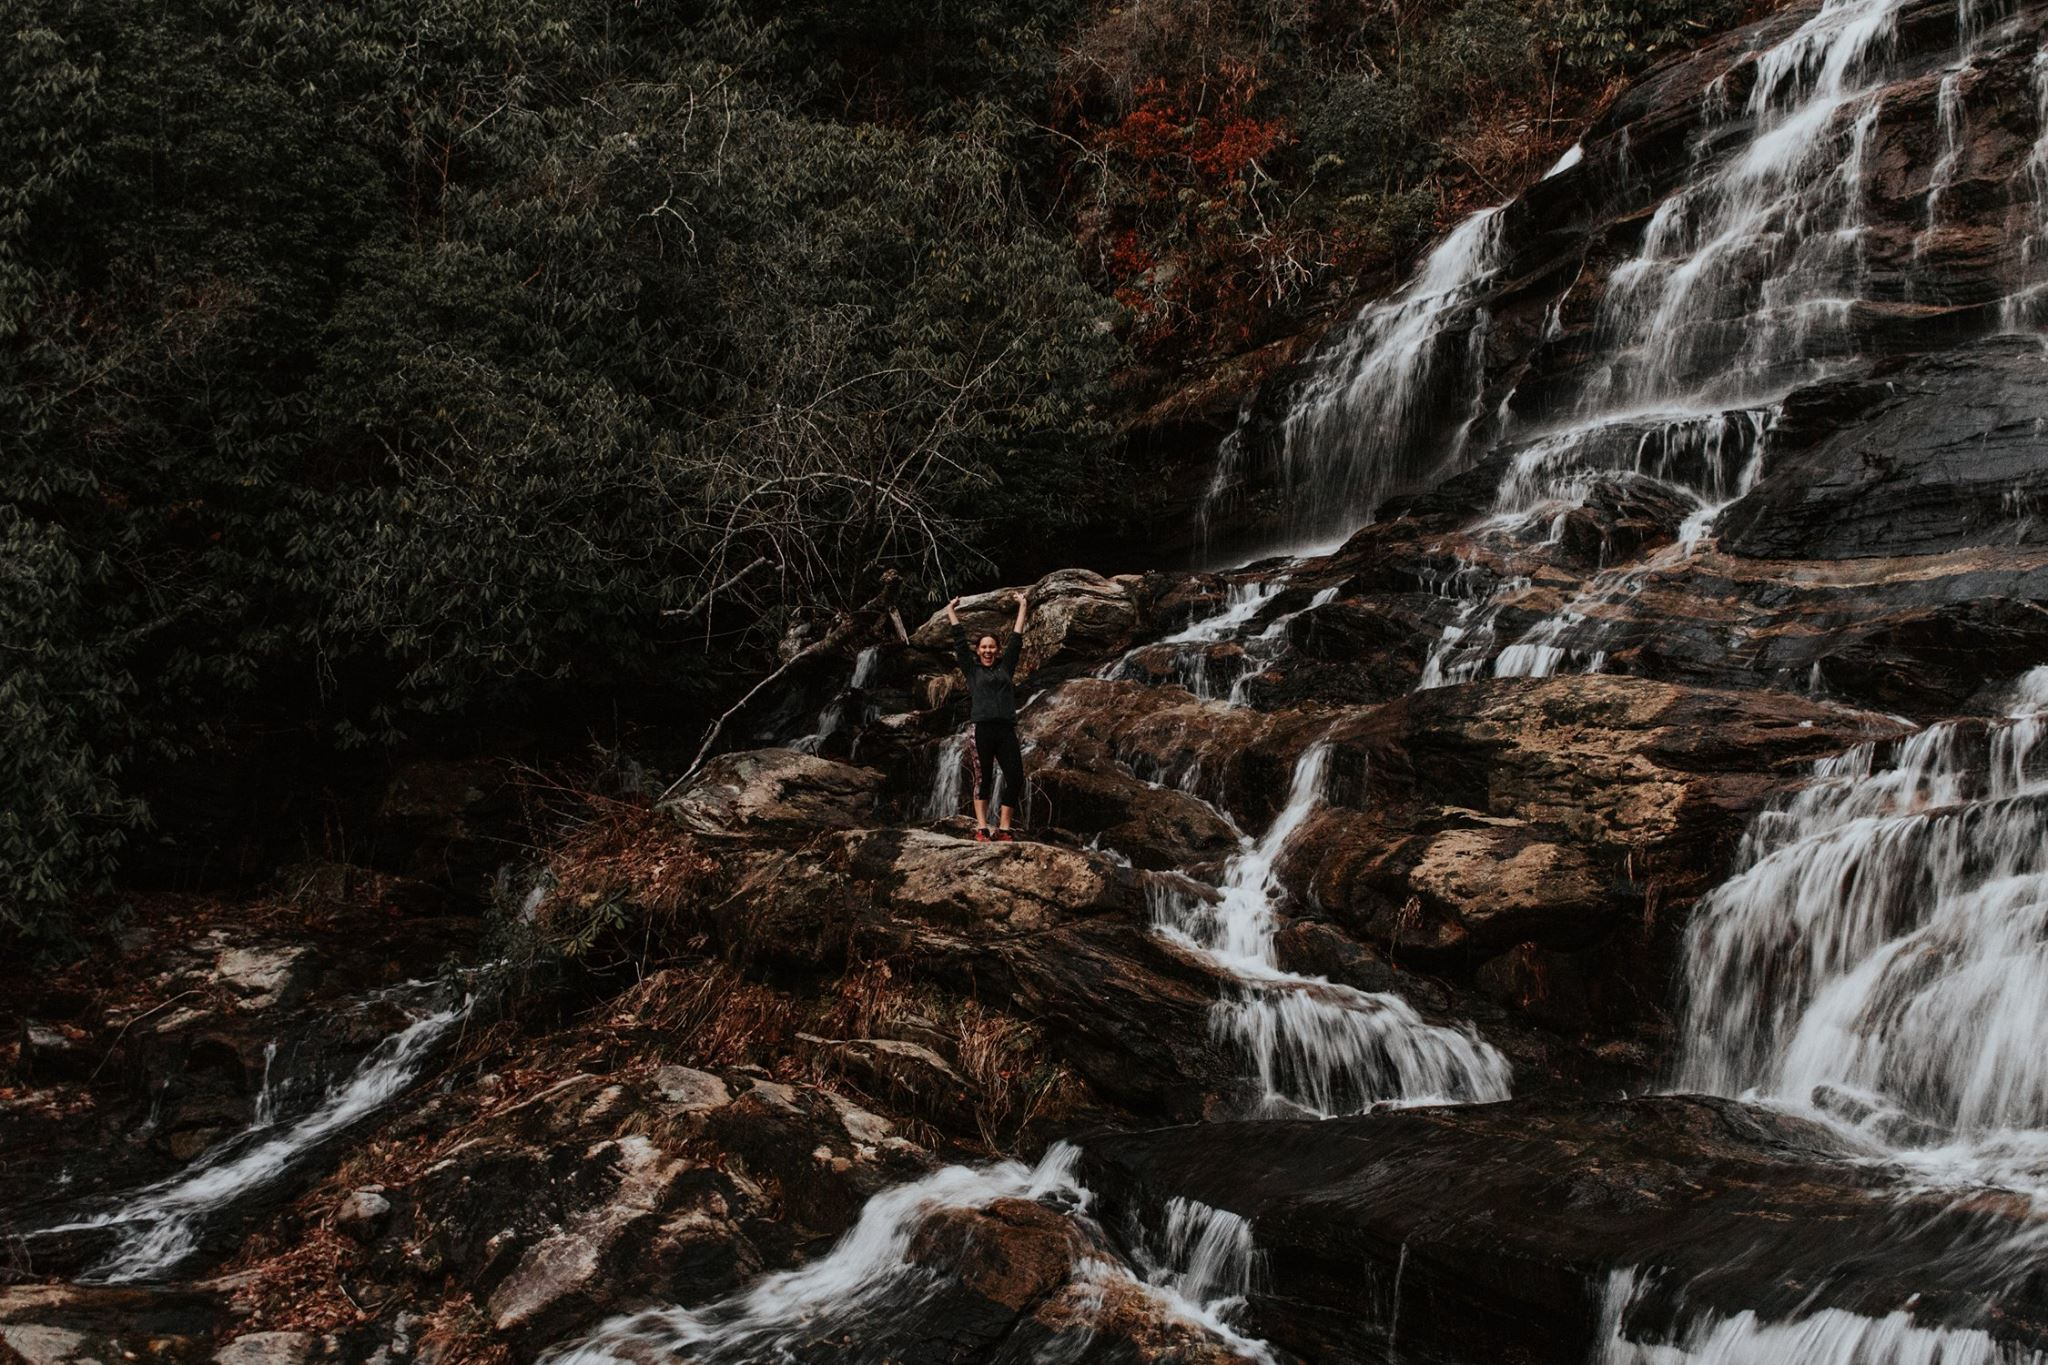 That's me, goofing off and climbing waterfalls. (Goofing off in a responsible manner, of course. I do not recommend doing this at home.) I don't do this stuff because it looks cool on Instagram. I do it because it's what I LOVE to do!